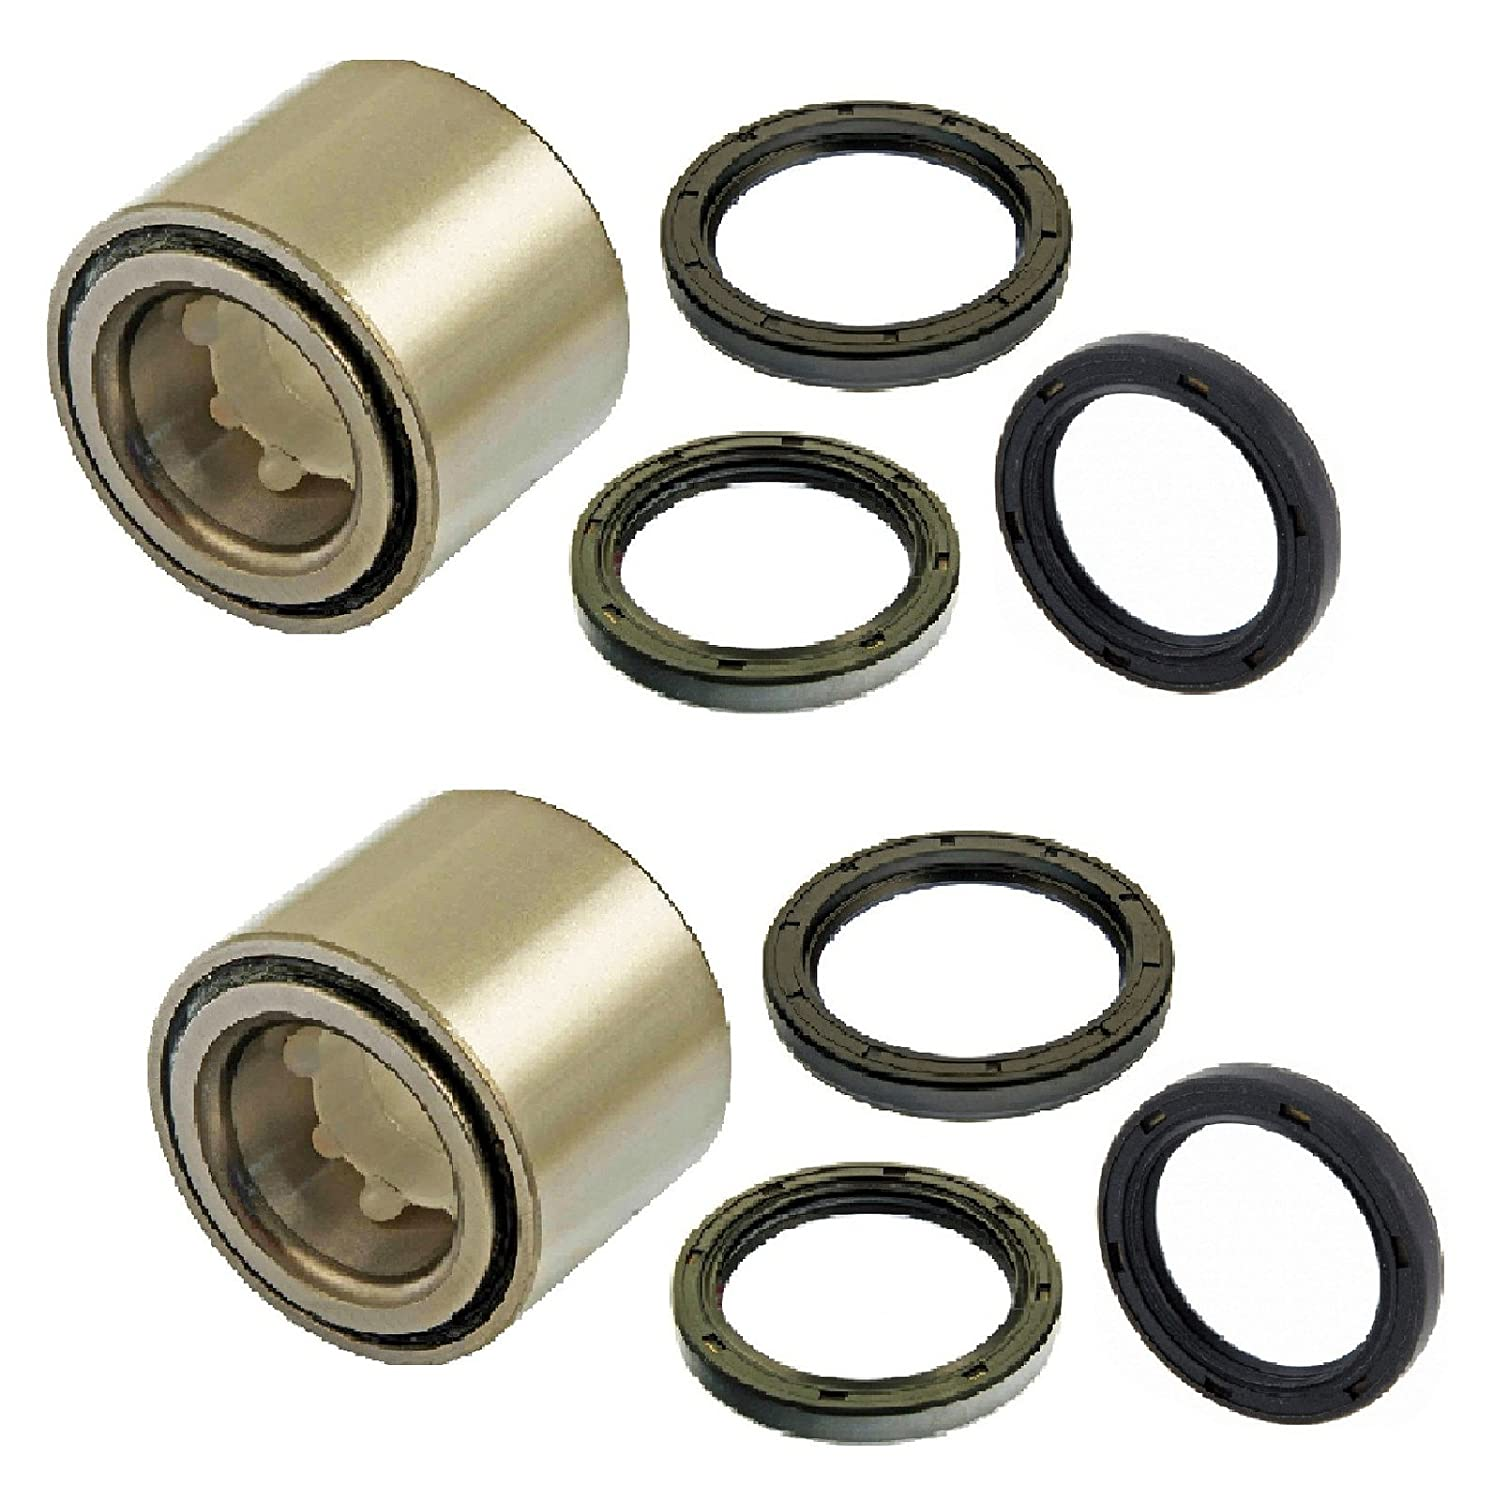 PAIR Rear Left And Right Wheel Bearing /& Seal fit 1993-2007 SUBARU IMPREZA RS, WRX, Outback Sport